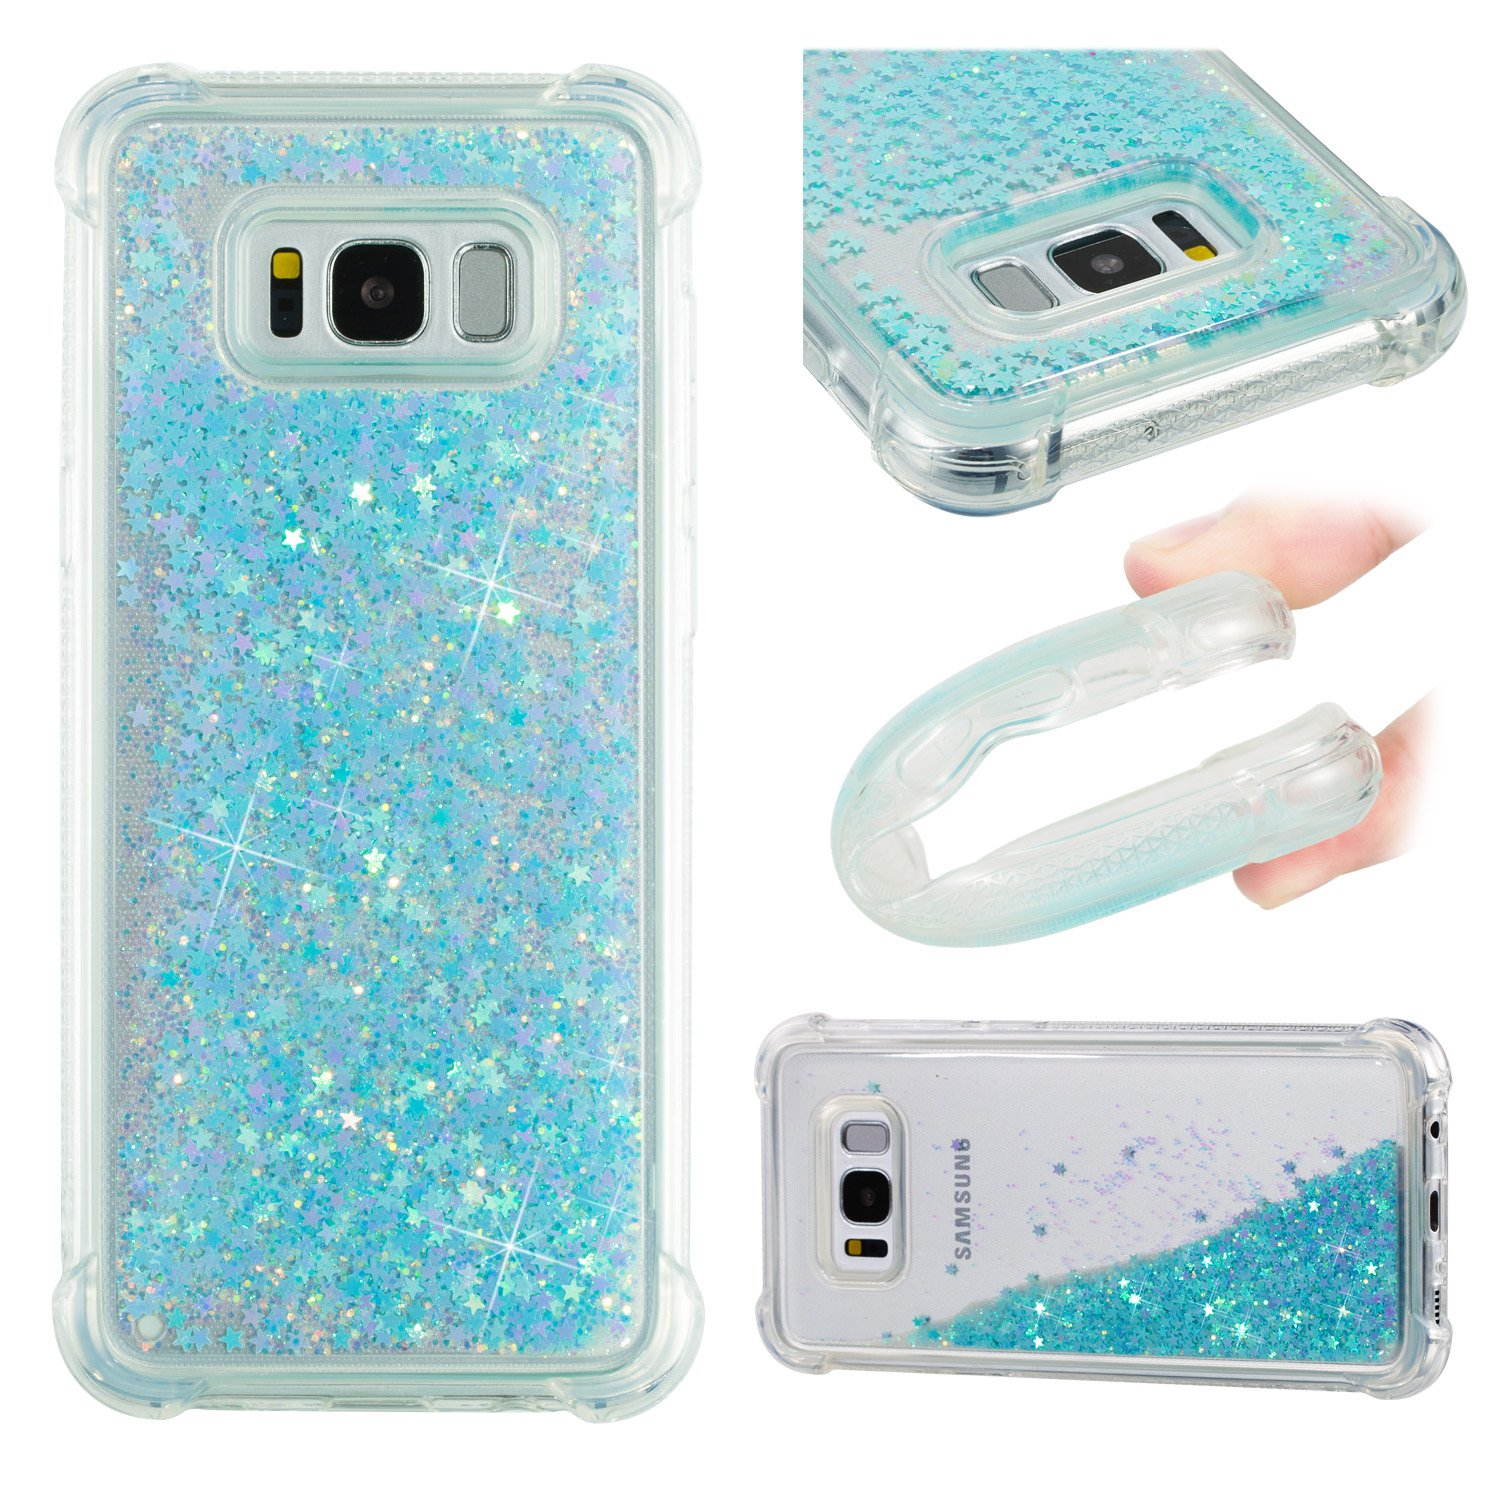 Galaxy S8 Case For Plusmerkuyom Floating Liquid Asoftcase Plus Hard Tpu Transparent Flowing 3d Bling Sparkling Glitter Cover Samsung